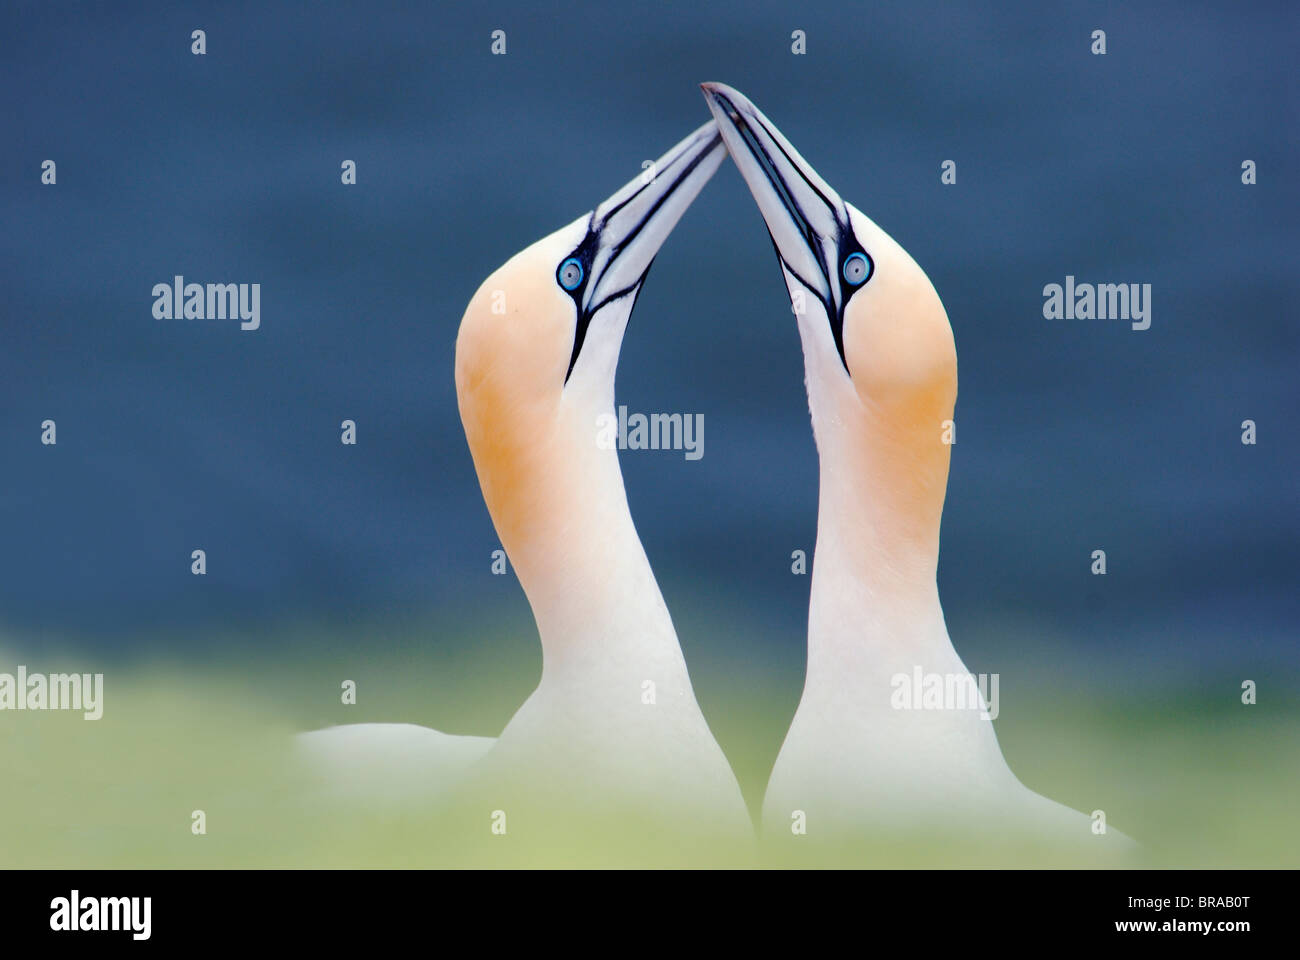 Northern gannet (Sula / Morus bassana) pair courtship, Heligoland, Germany Stock Photo